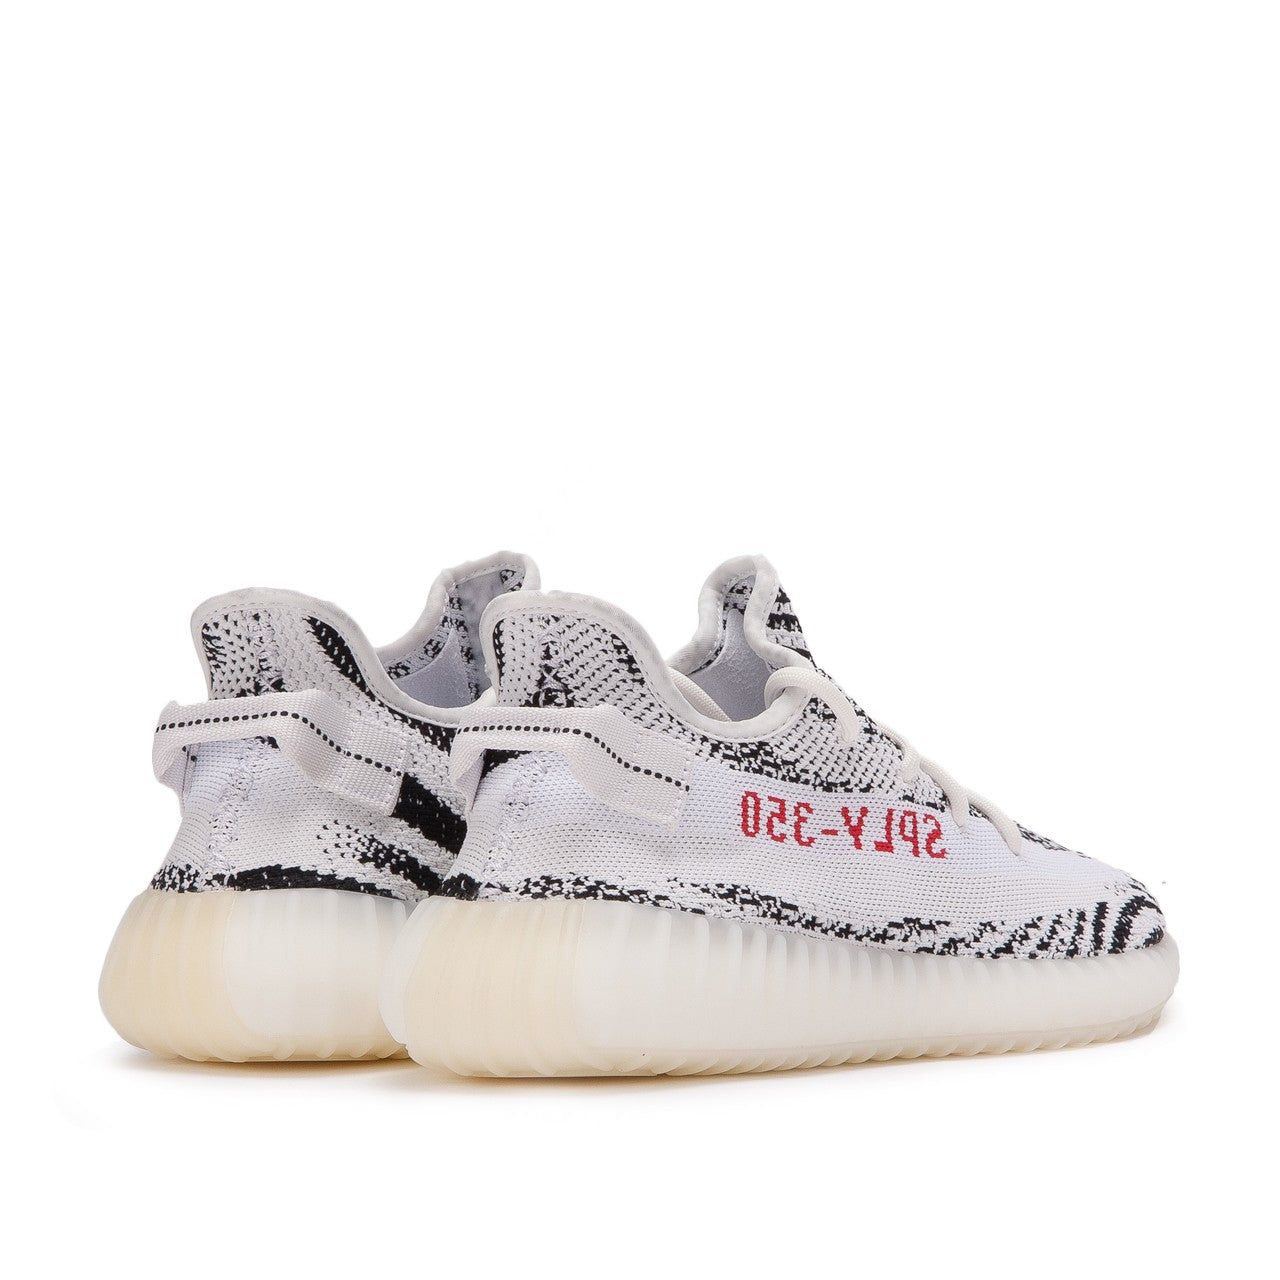 newest a4455 569ac Adidas Yeezy Boost 350 V2 Zebra 2018 – Staple Project